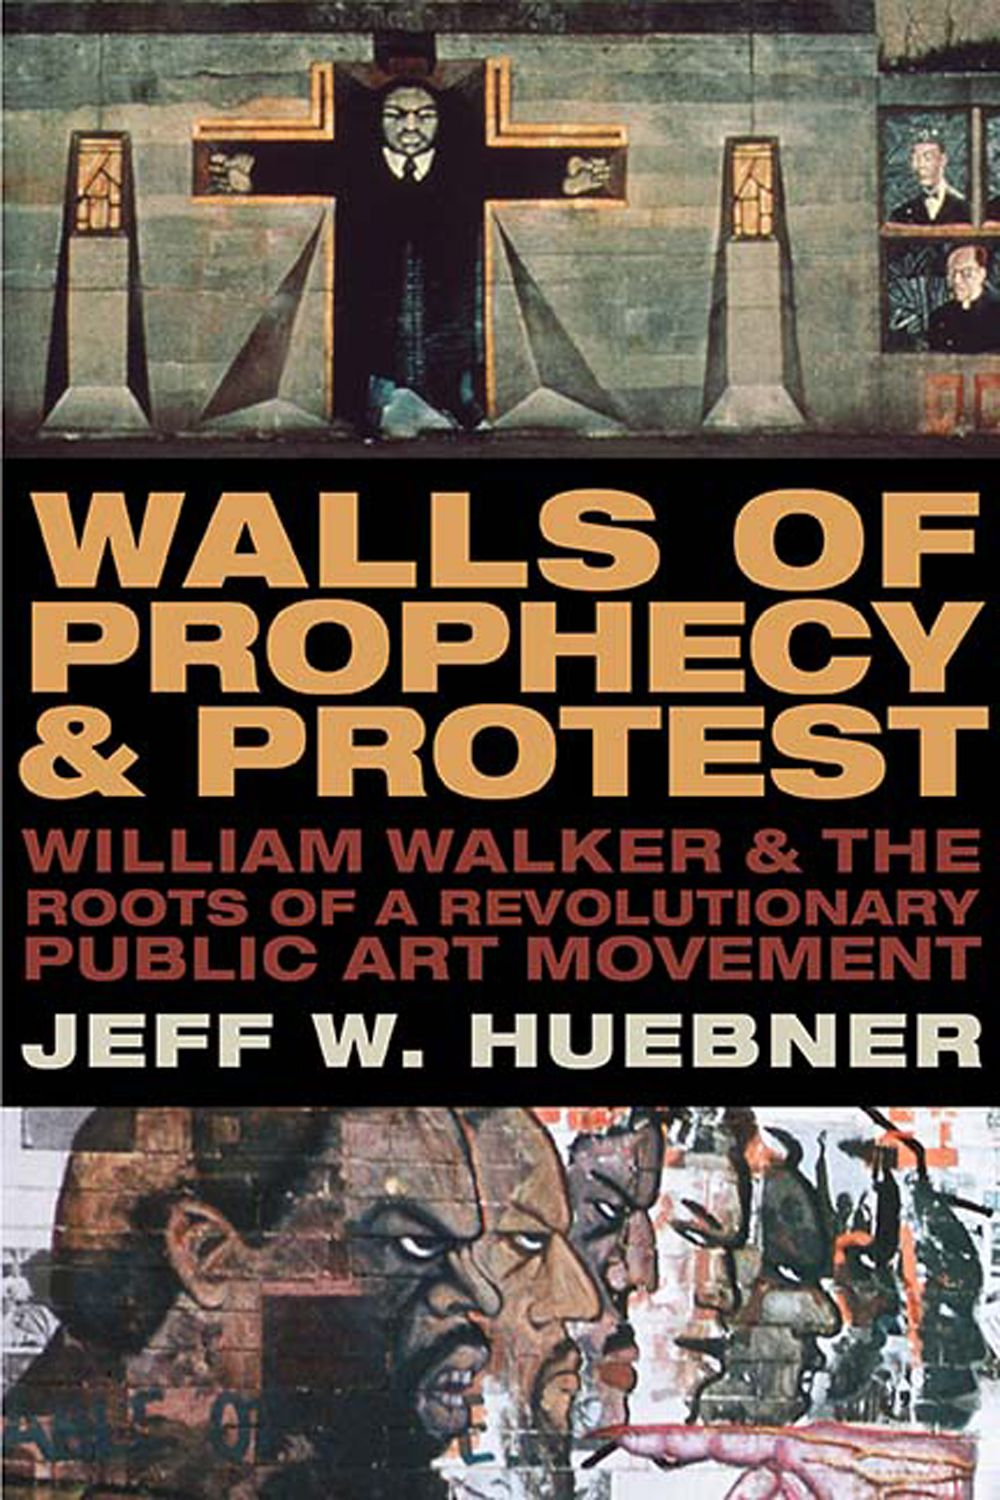 """Jeff W. Huebner's new book """"Walls of Prophecy and Protest: William Walker and the Roots of a Revolutionary Public Art Movement."""""""